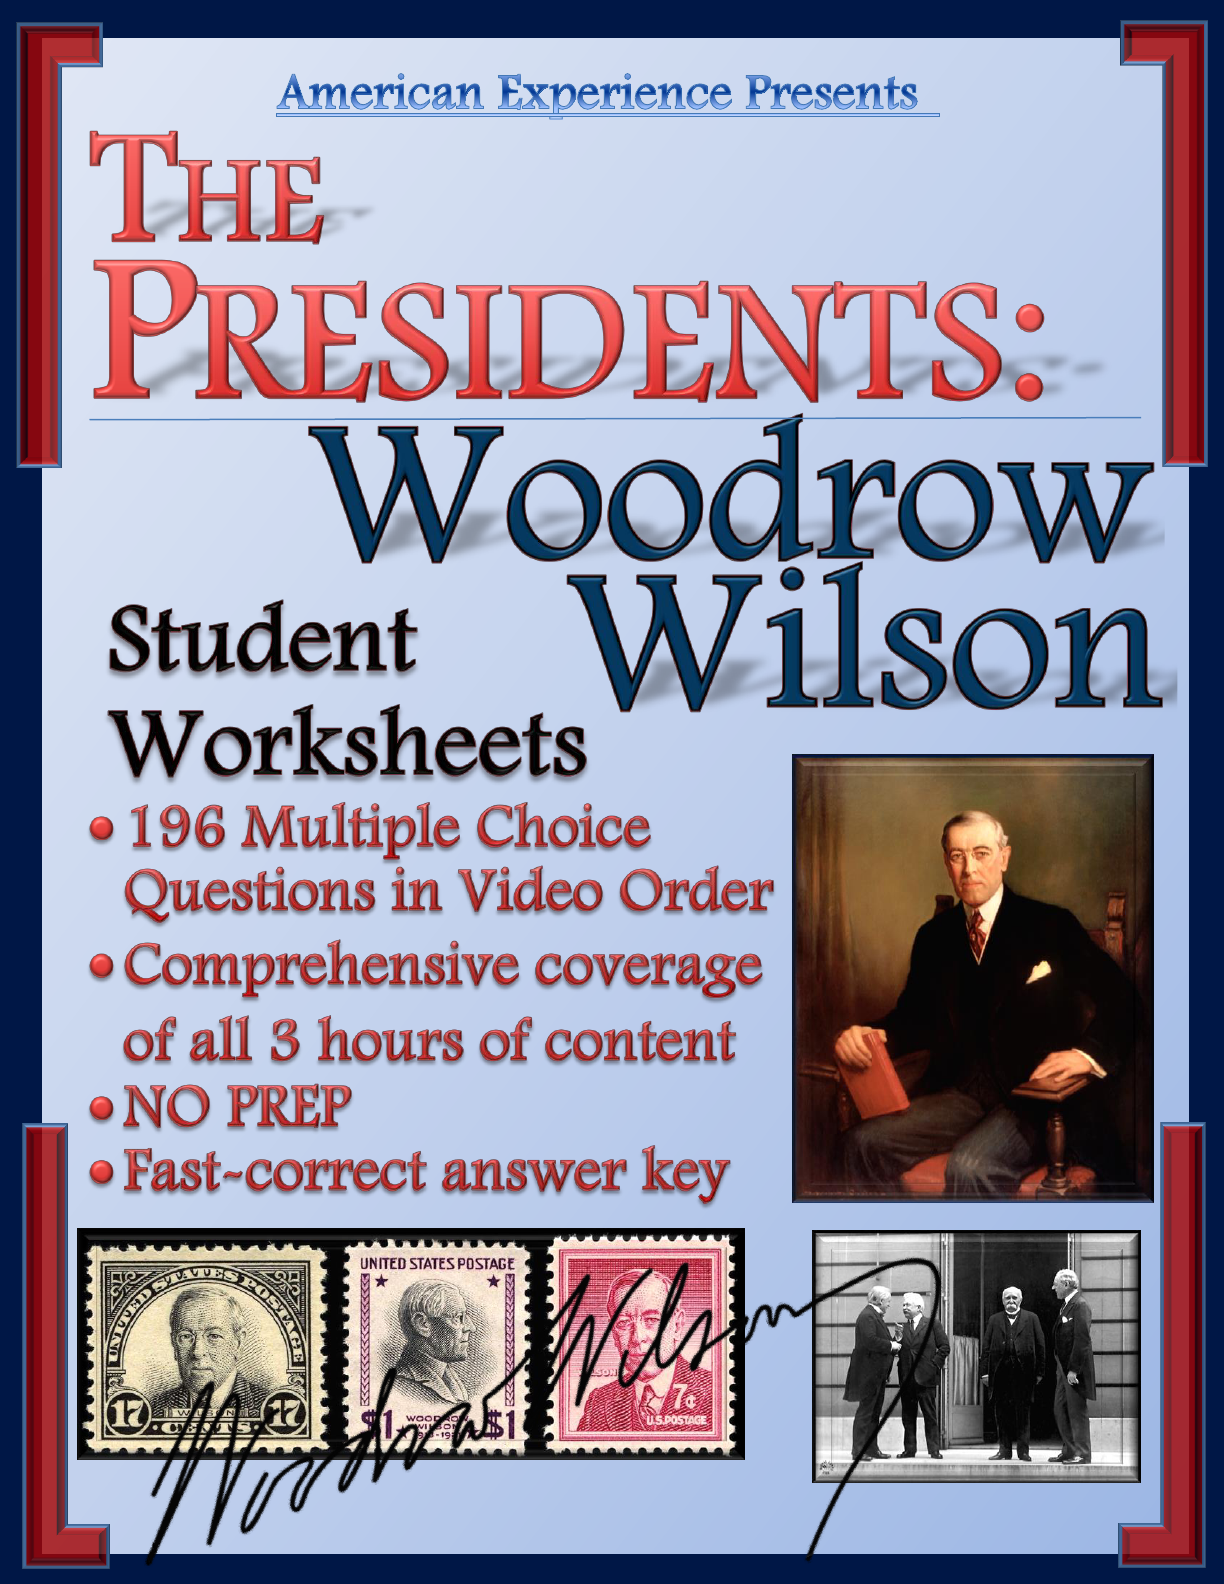 American Experience Woodrow Wilson Worksheets For The